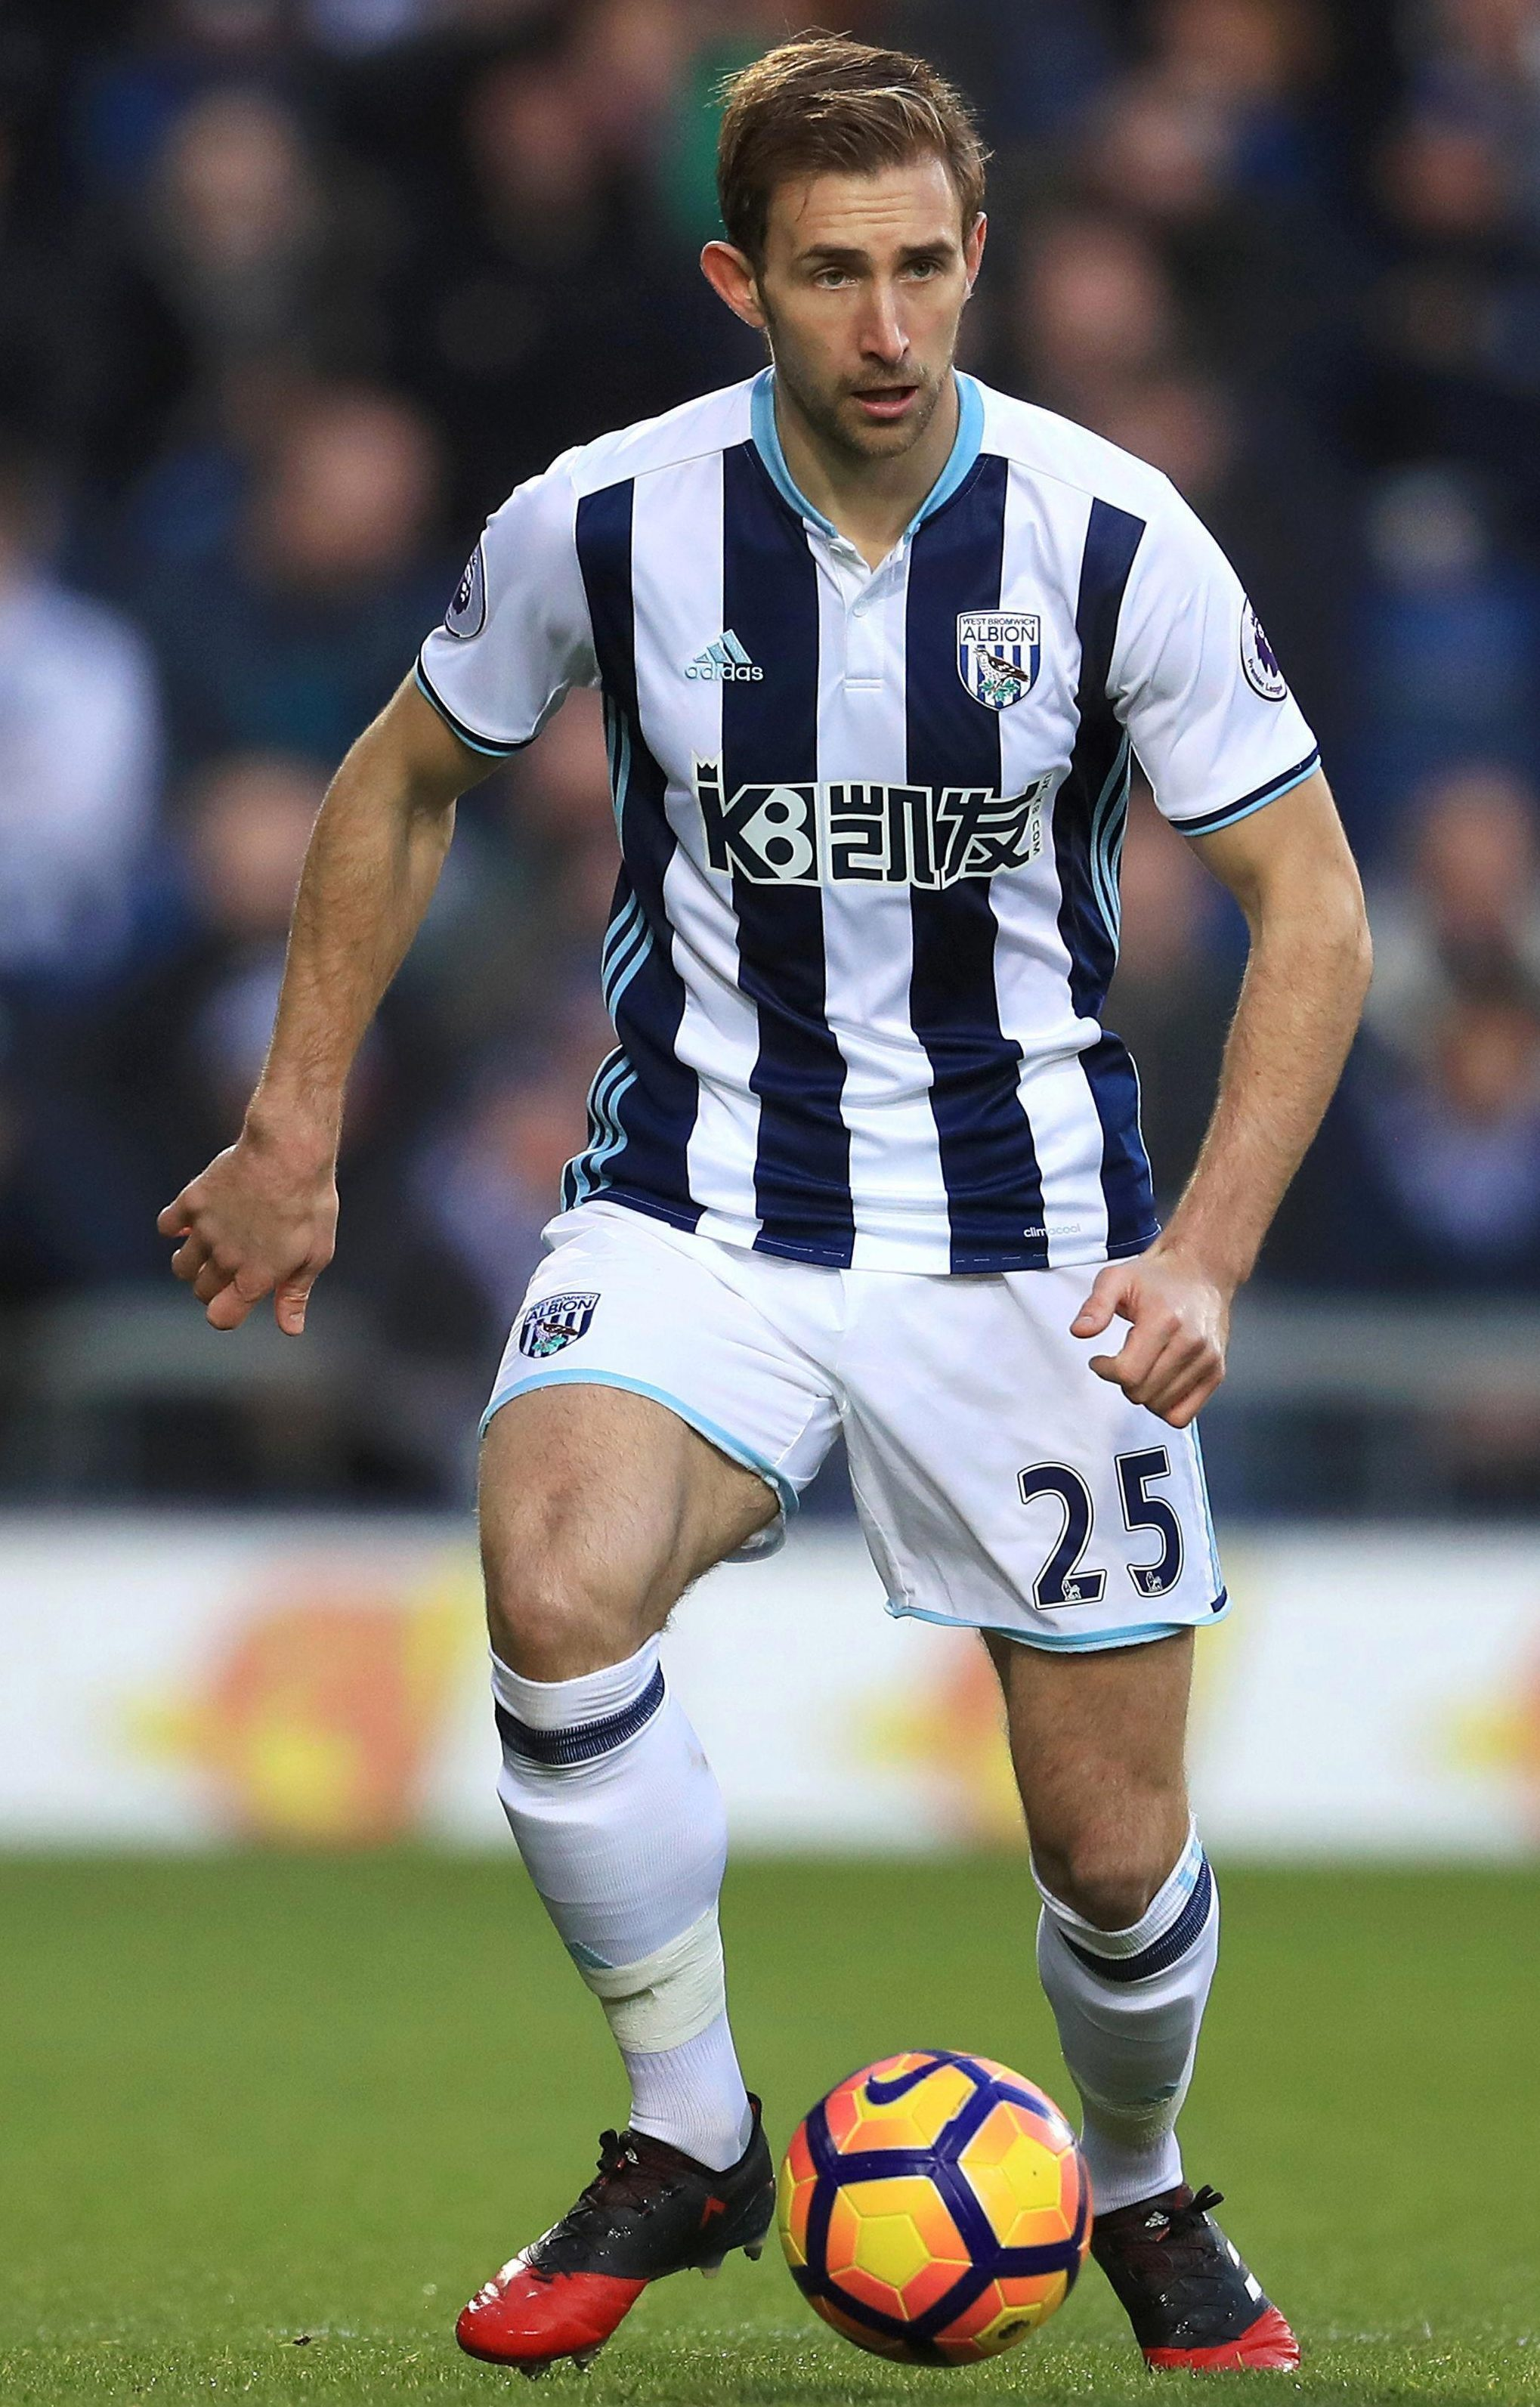 Burnley boss Sean Dyche eyeing £10m swoop for West Brom ace Craig Dawson if relegation is confirmed